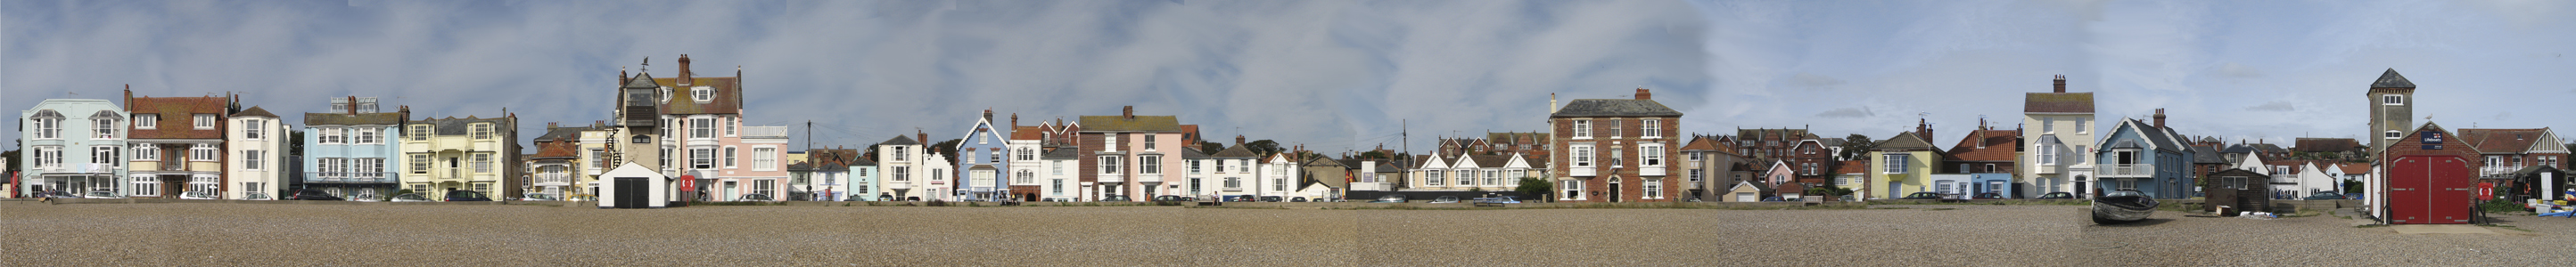 Aldeburgh Sea Front the Old Lookout